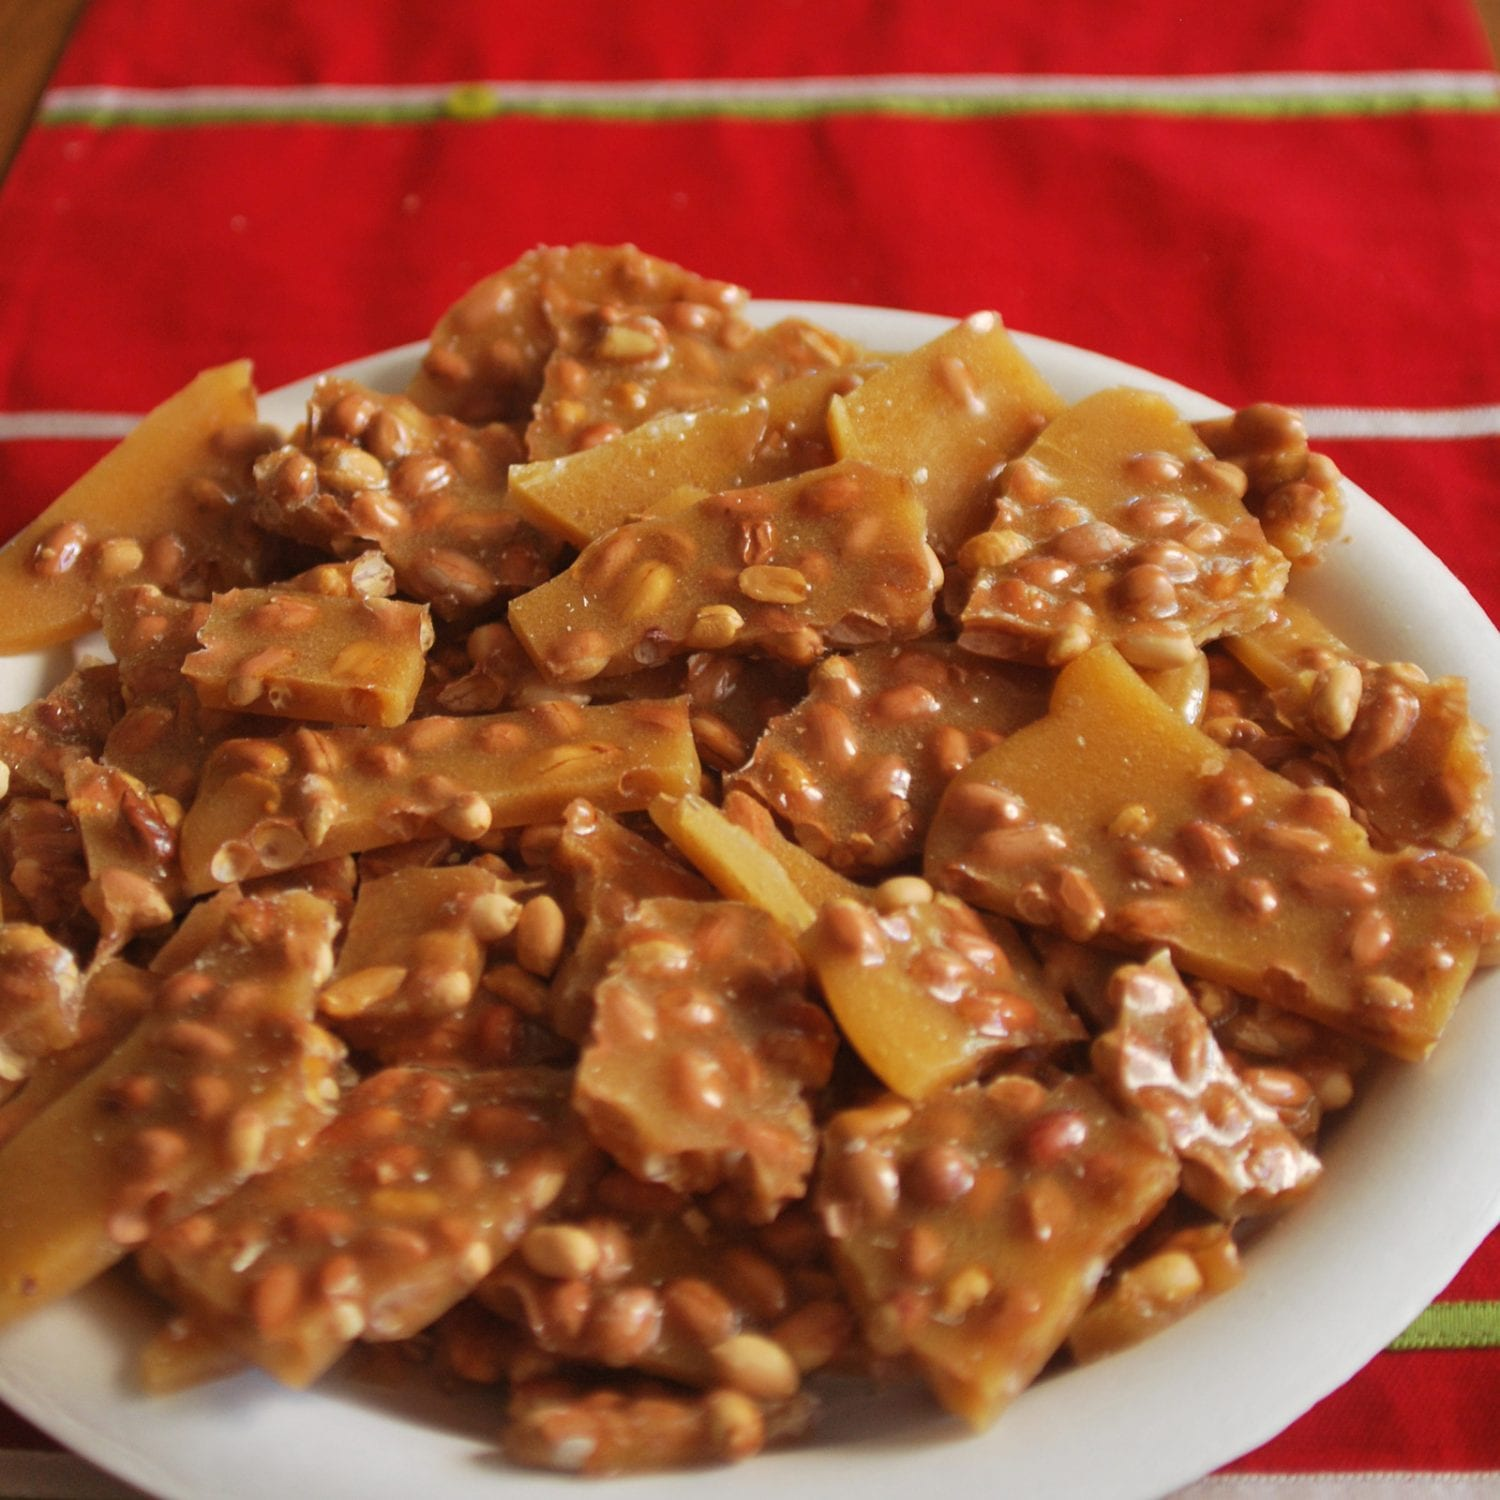 cannabis infused peanut brittle on a white plate which is all on a red tablecloth